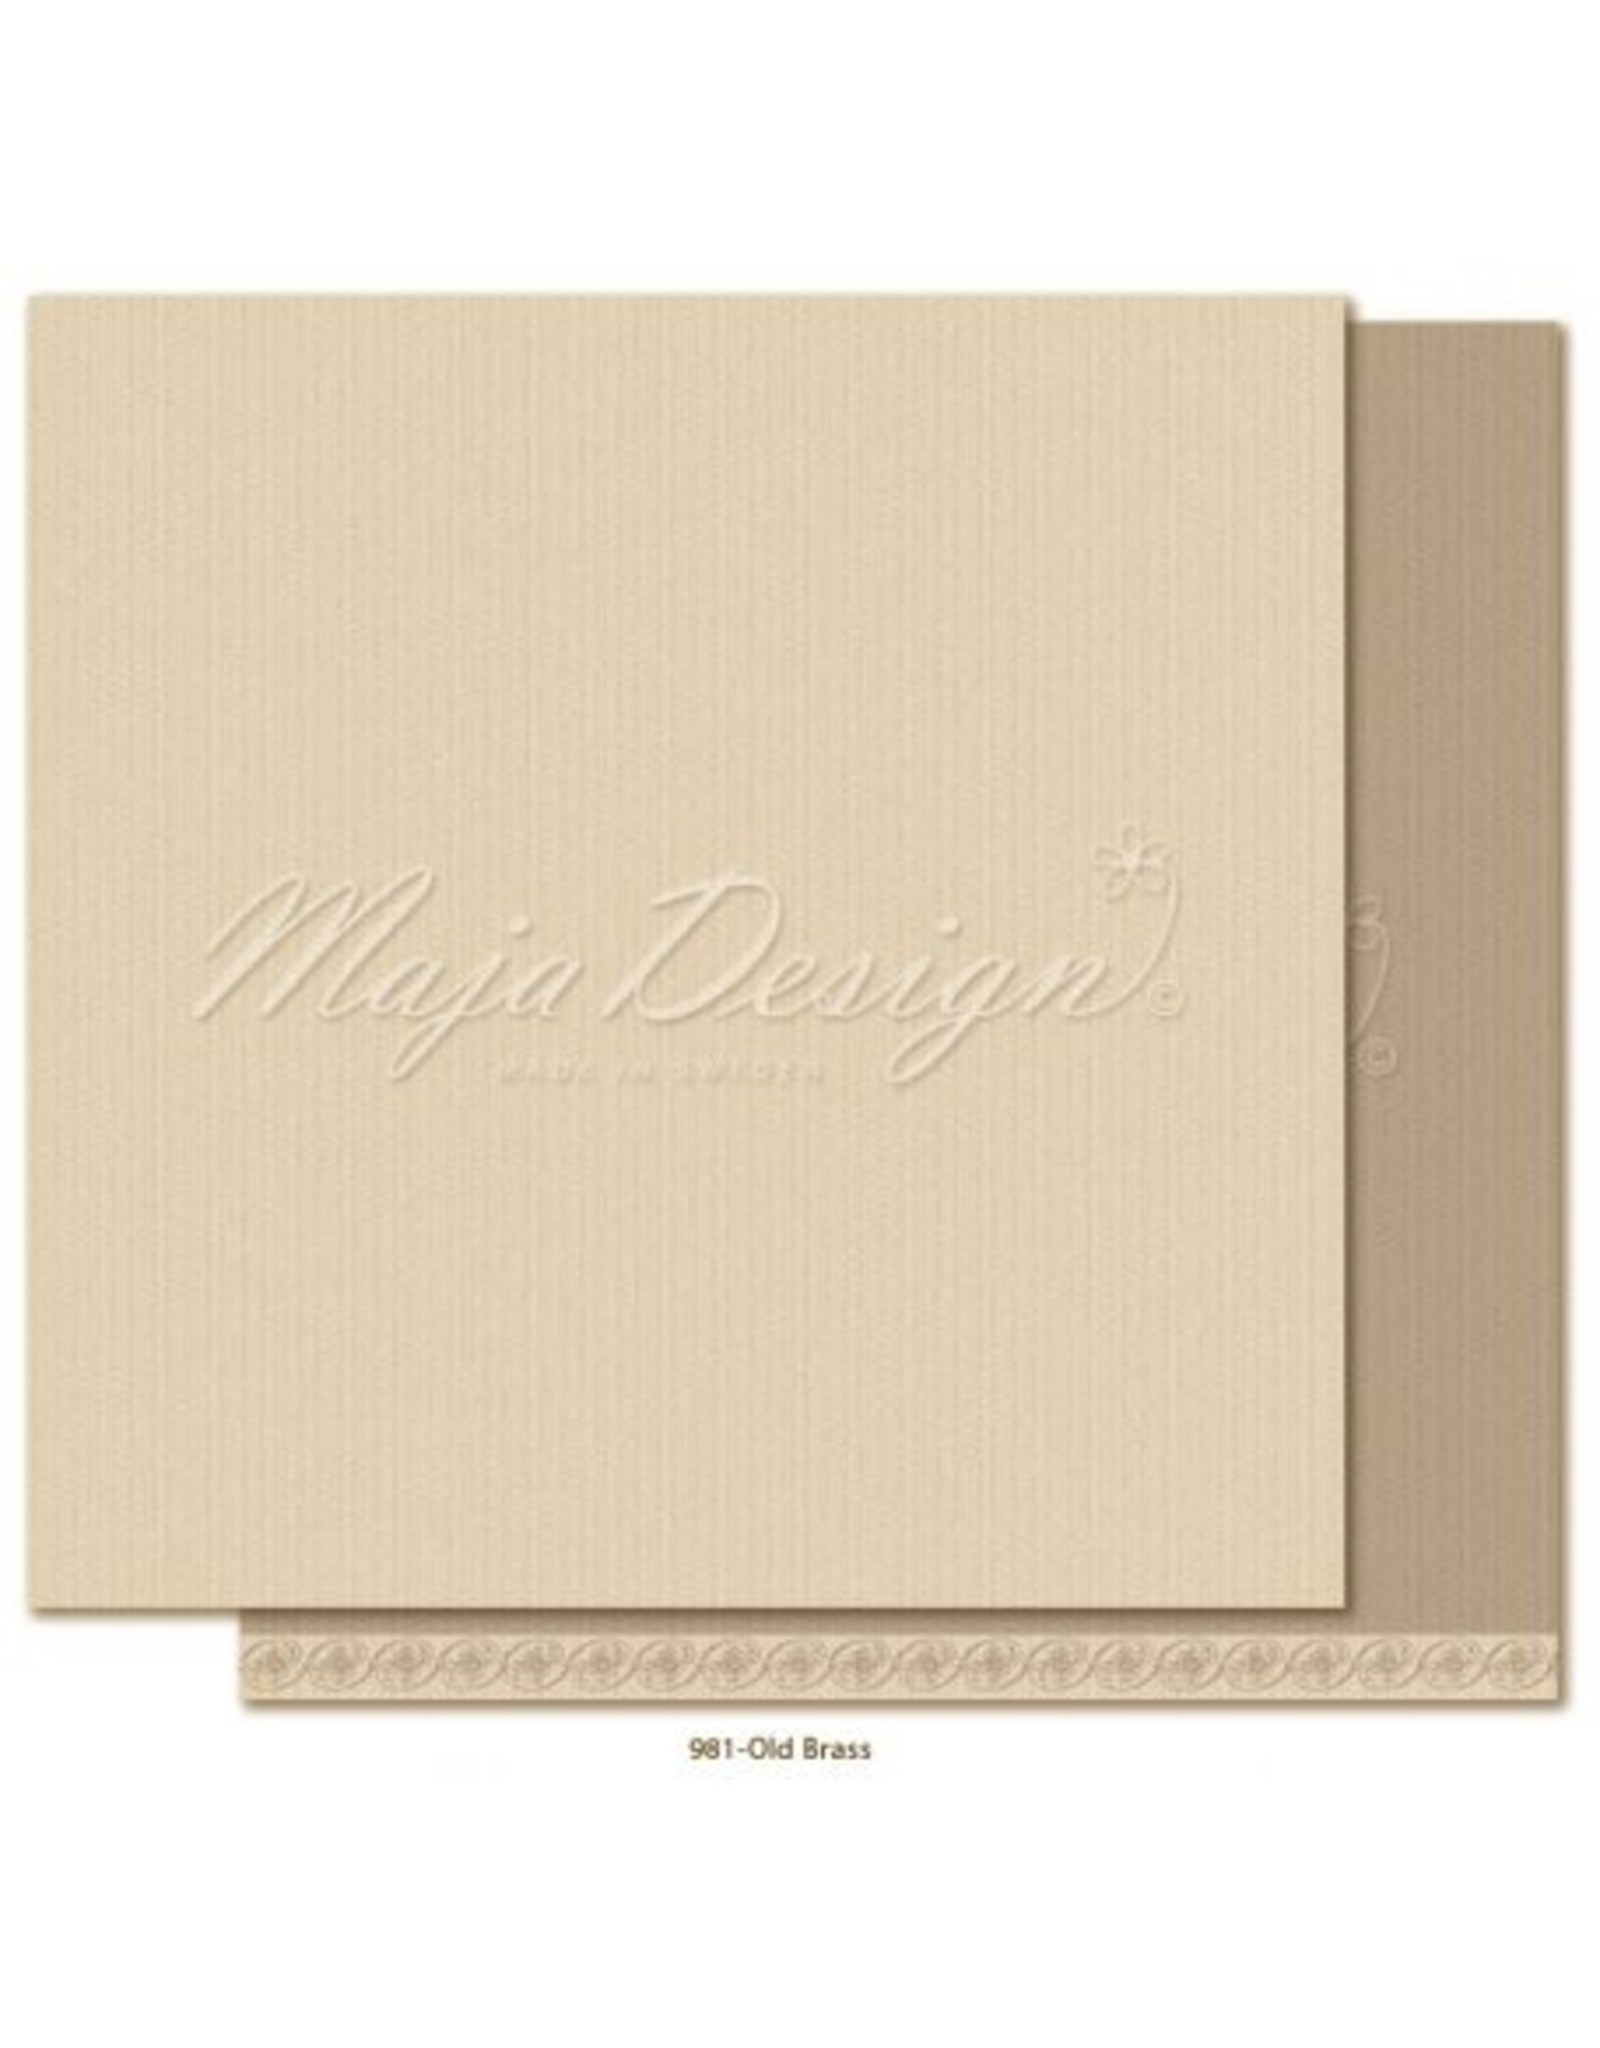 Maja Design Maja Design Monochromes Shades of Celebration Old Brass